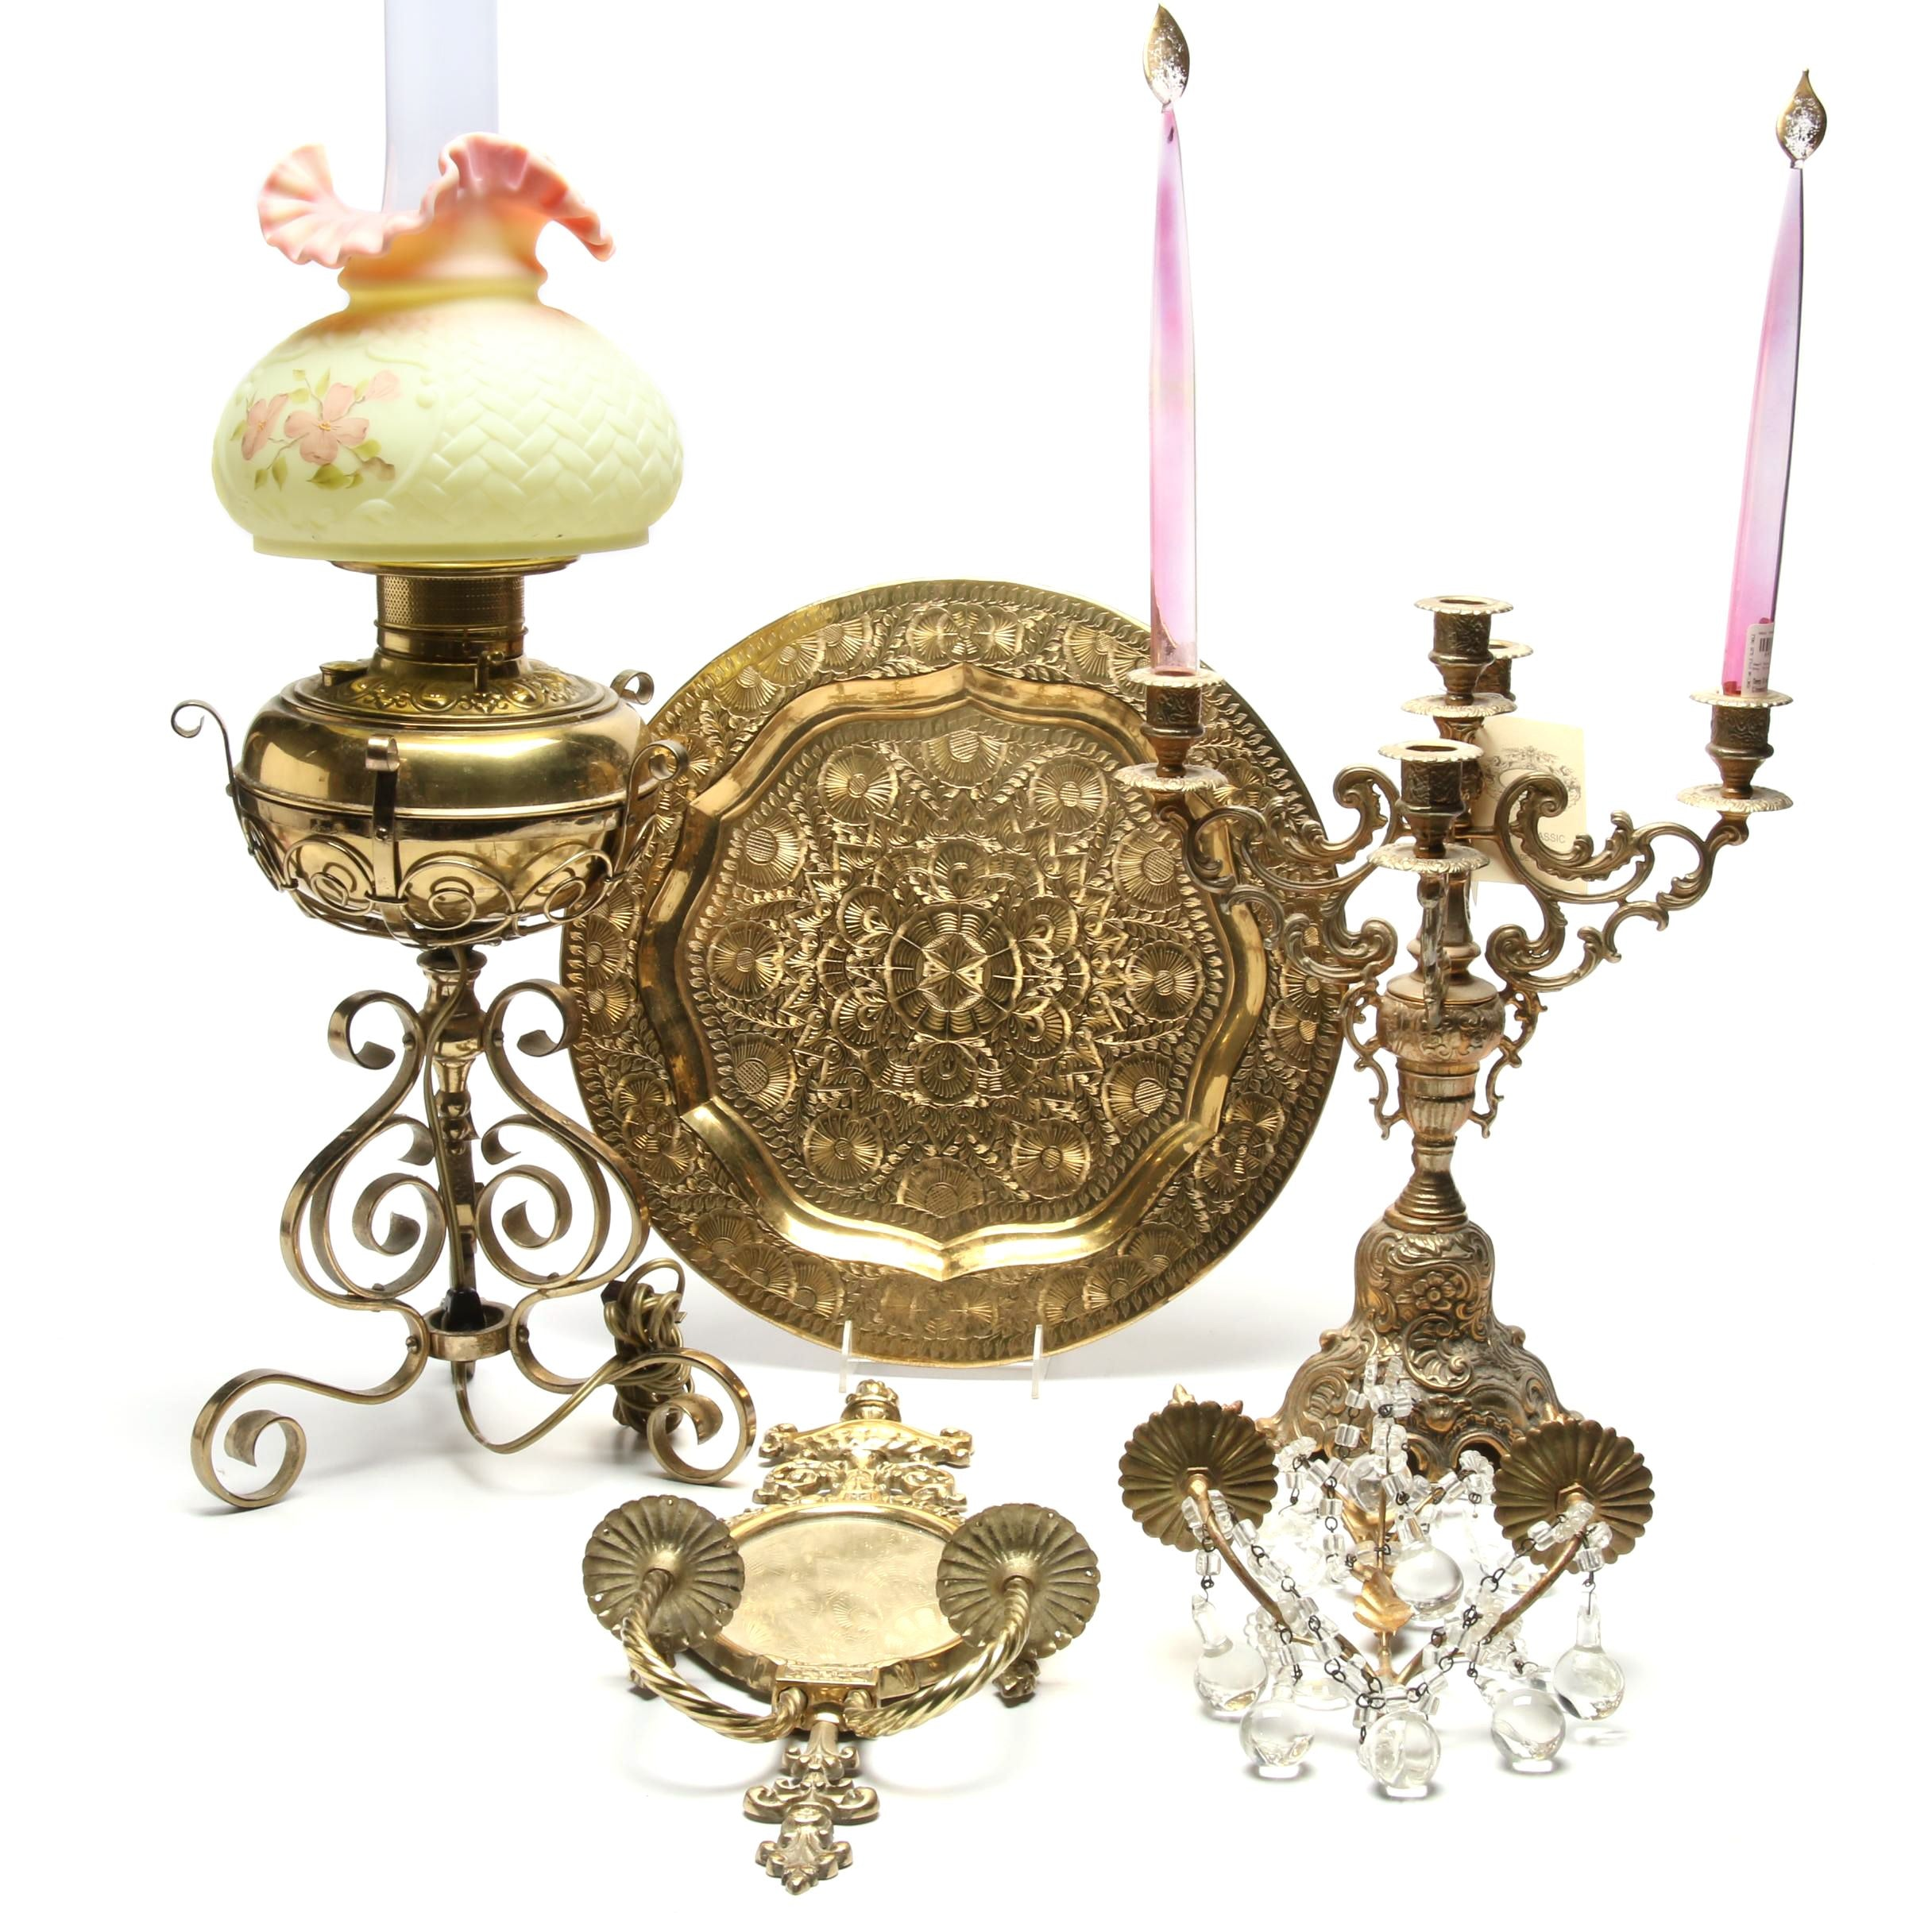 Brass Decor Including Converted Oil Lamp with Ruffled Glass Shade